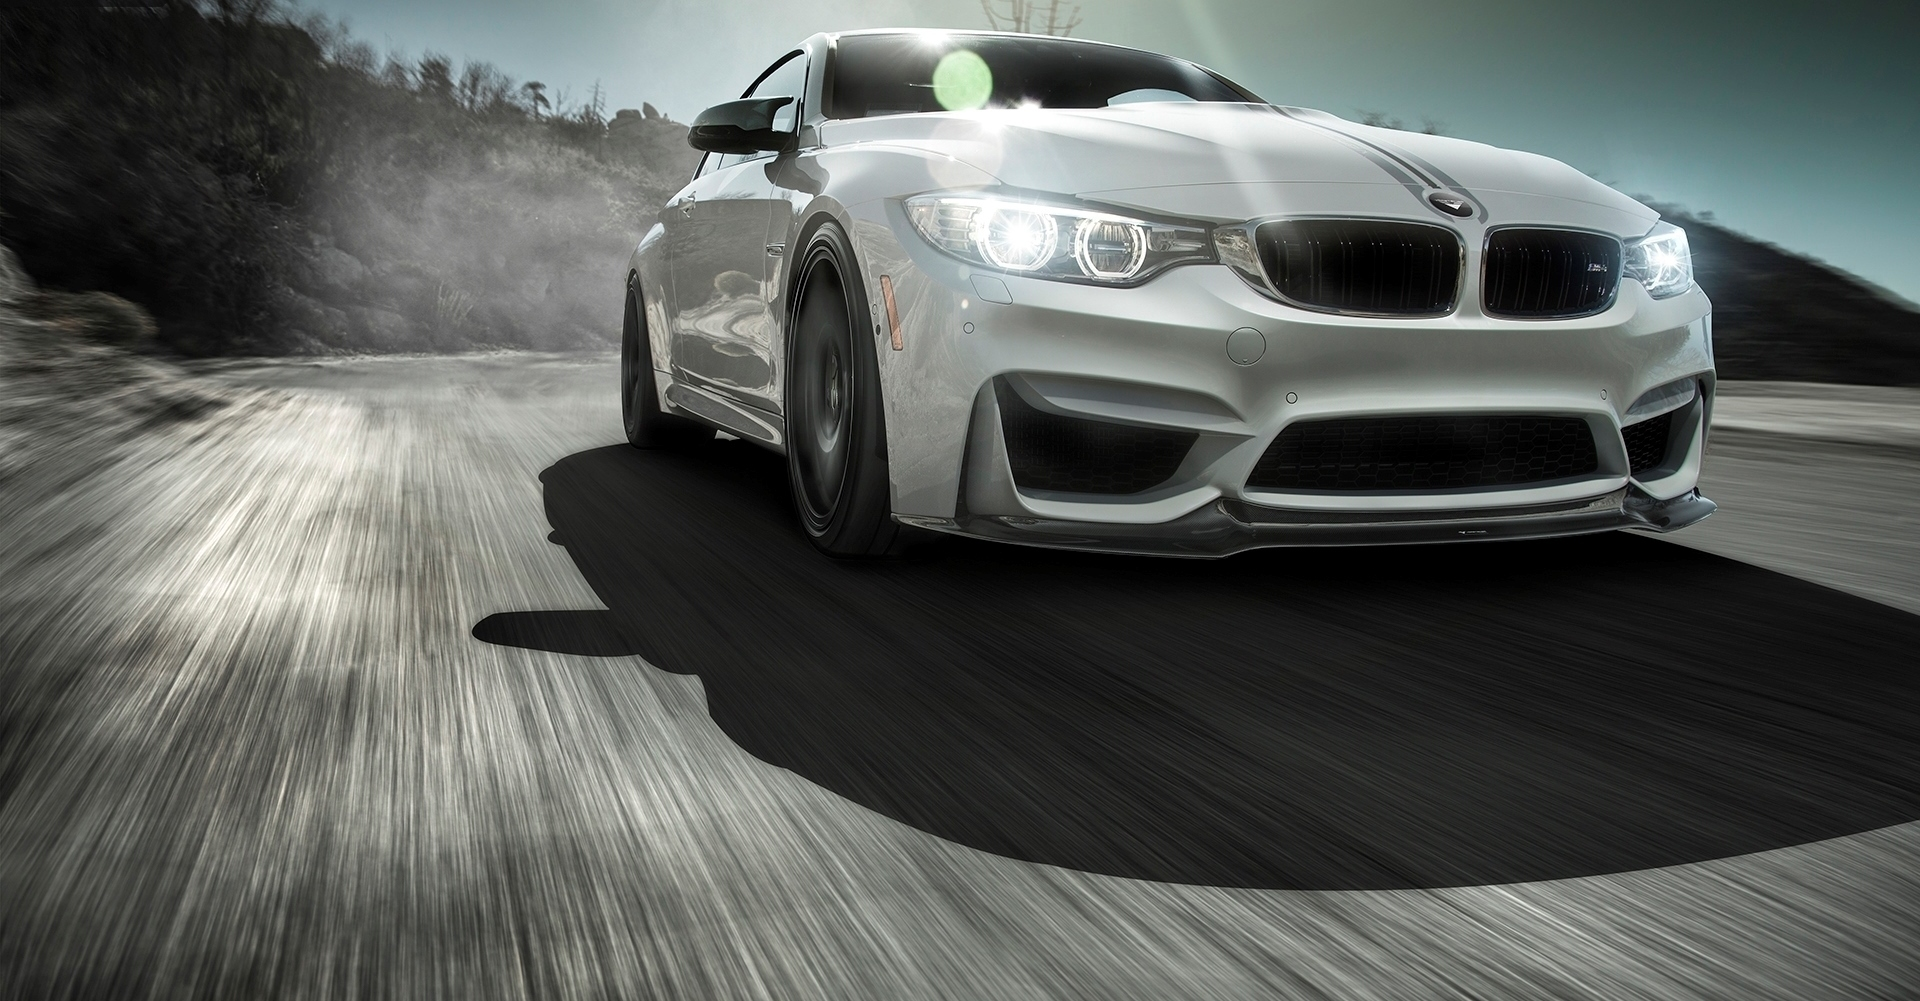 VORSTEINER STYLE CARBON FRONT SPOILER BUMPER FOR BMW M3 NEW STYLE